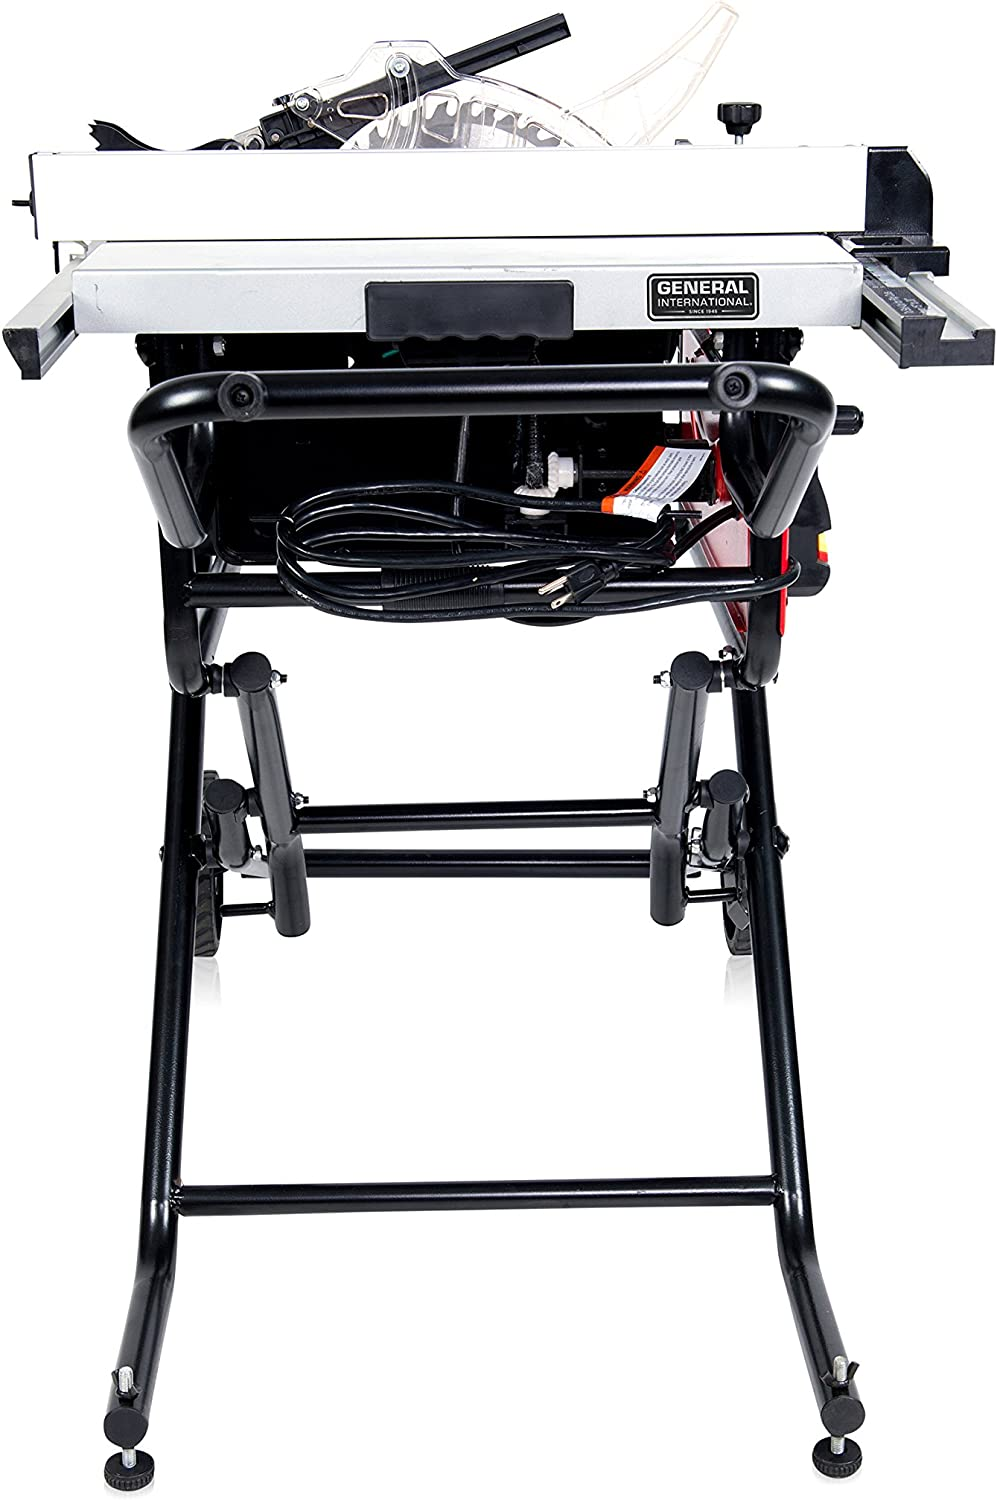 General International TS4004 Table Saws product image 3